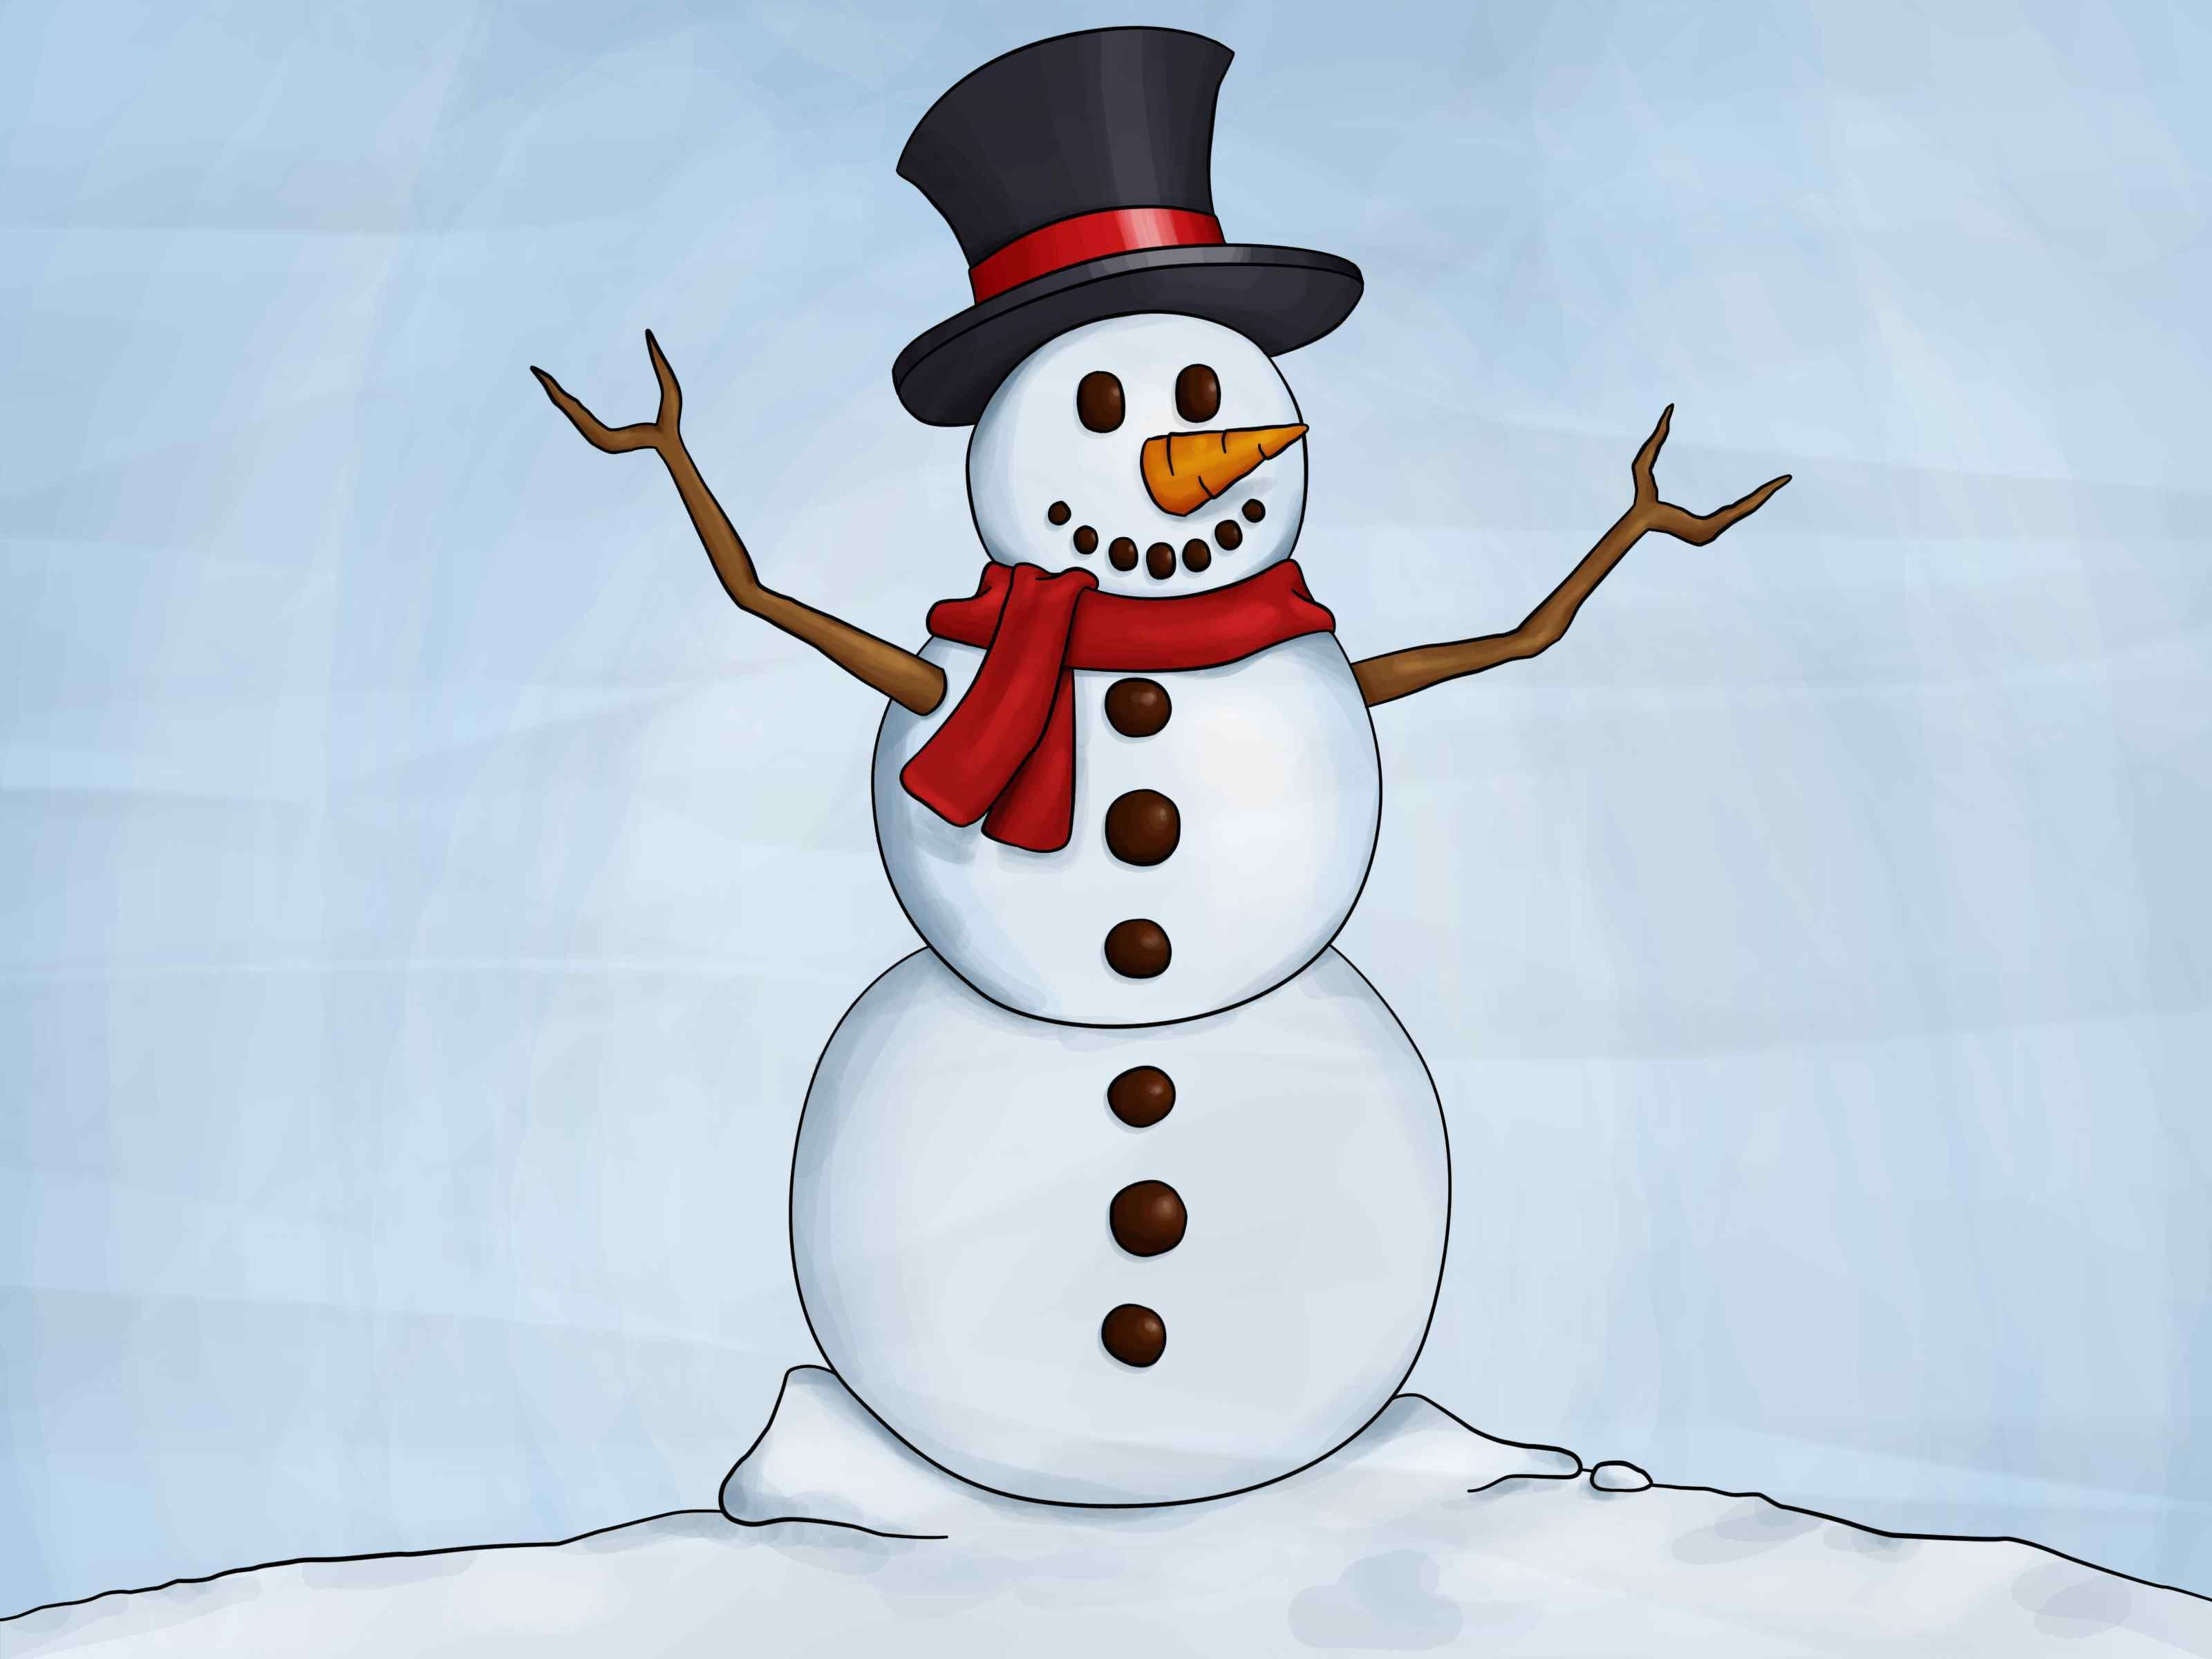 12 + Inspirational Cute Christmas Snowman Drawings We love